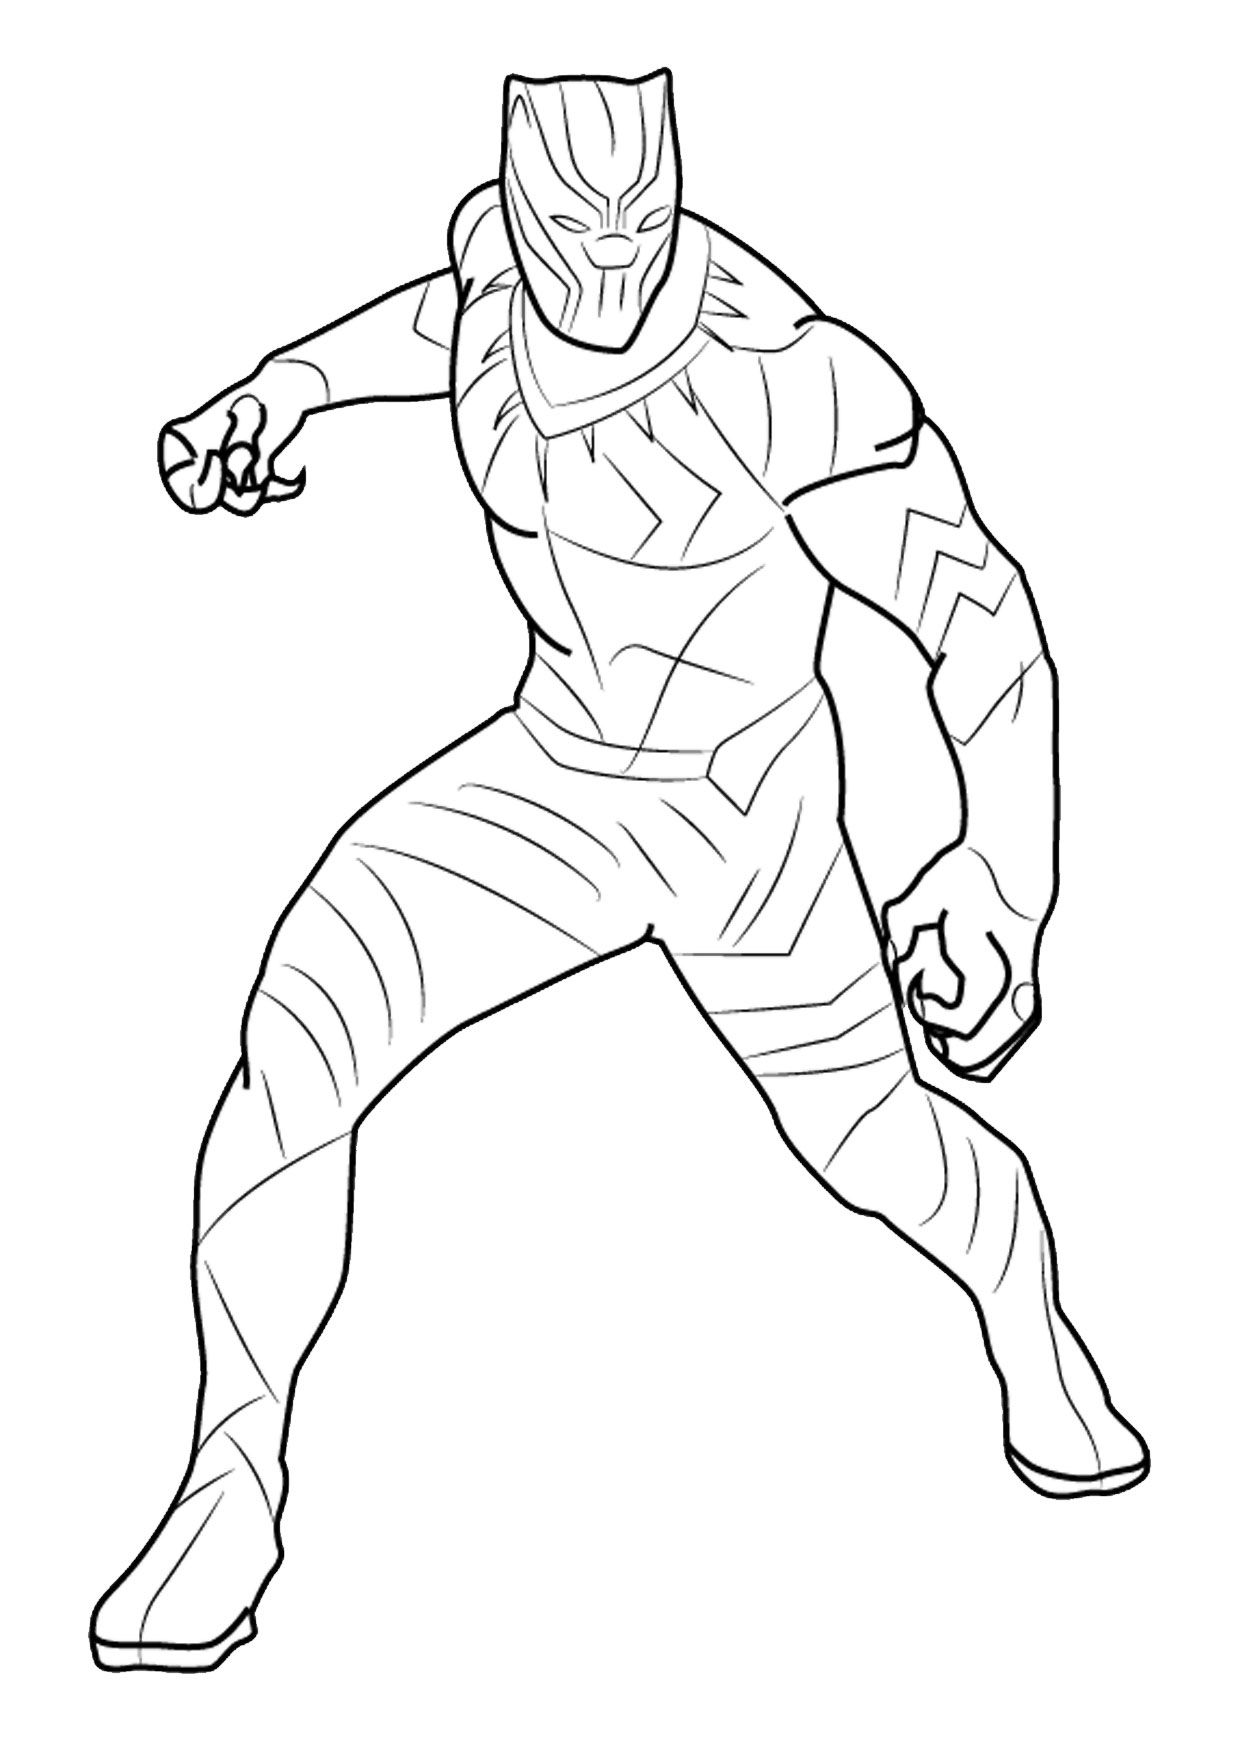 12 disegni di black panther da colorare sport disegni for Stampe da colorare spiderman